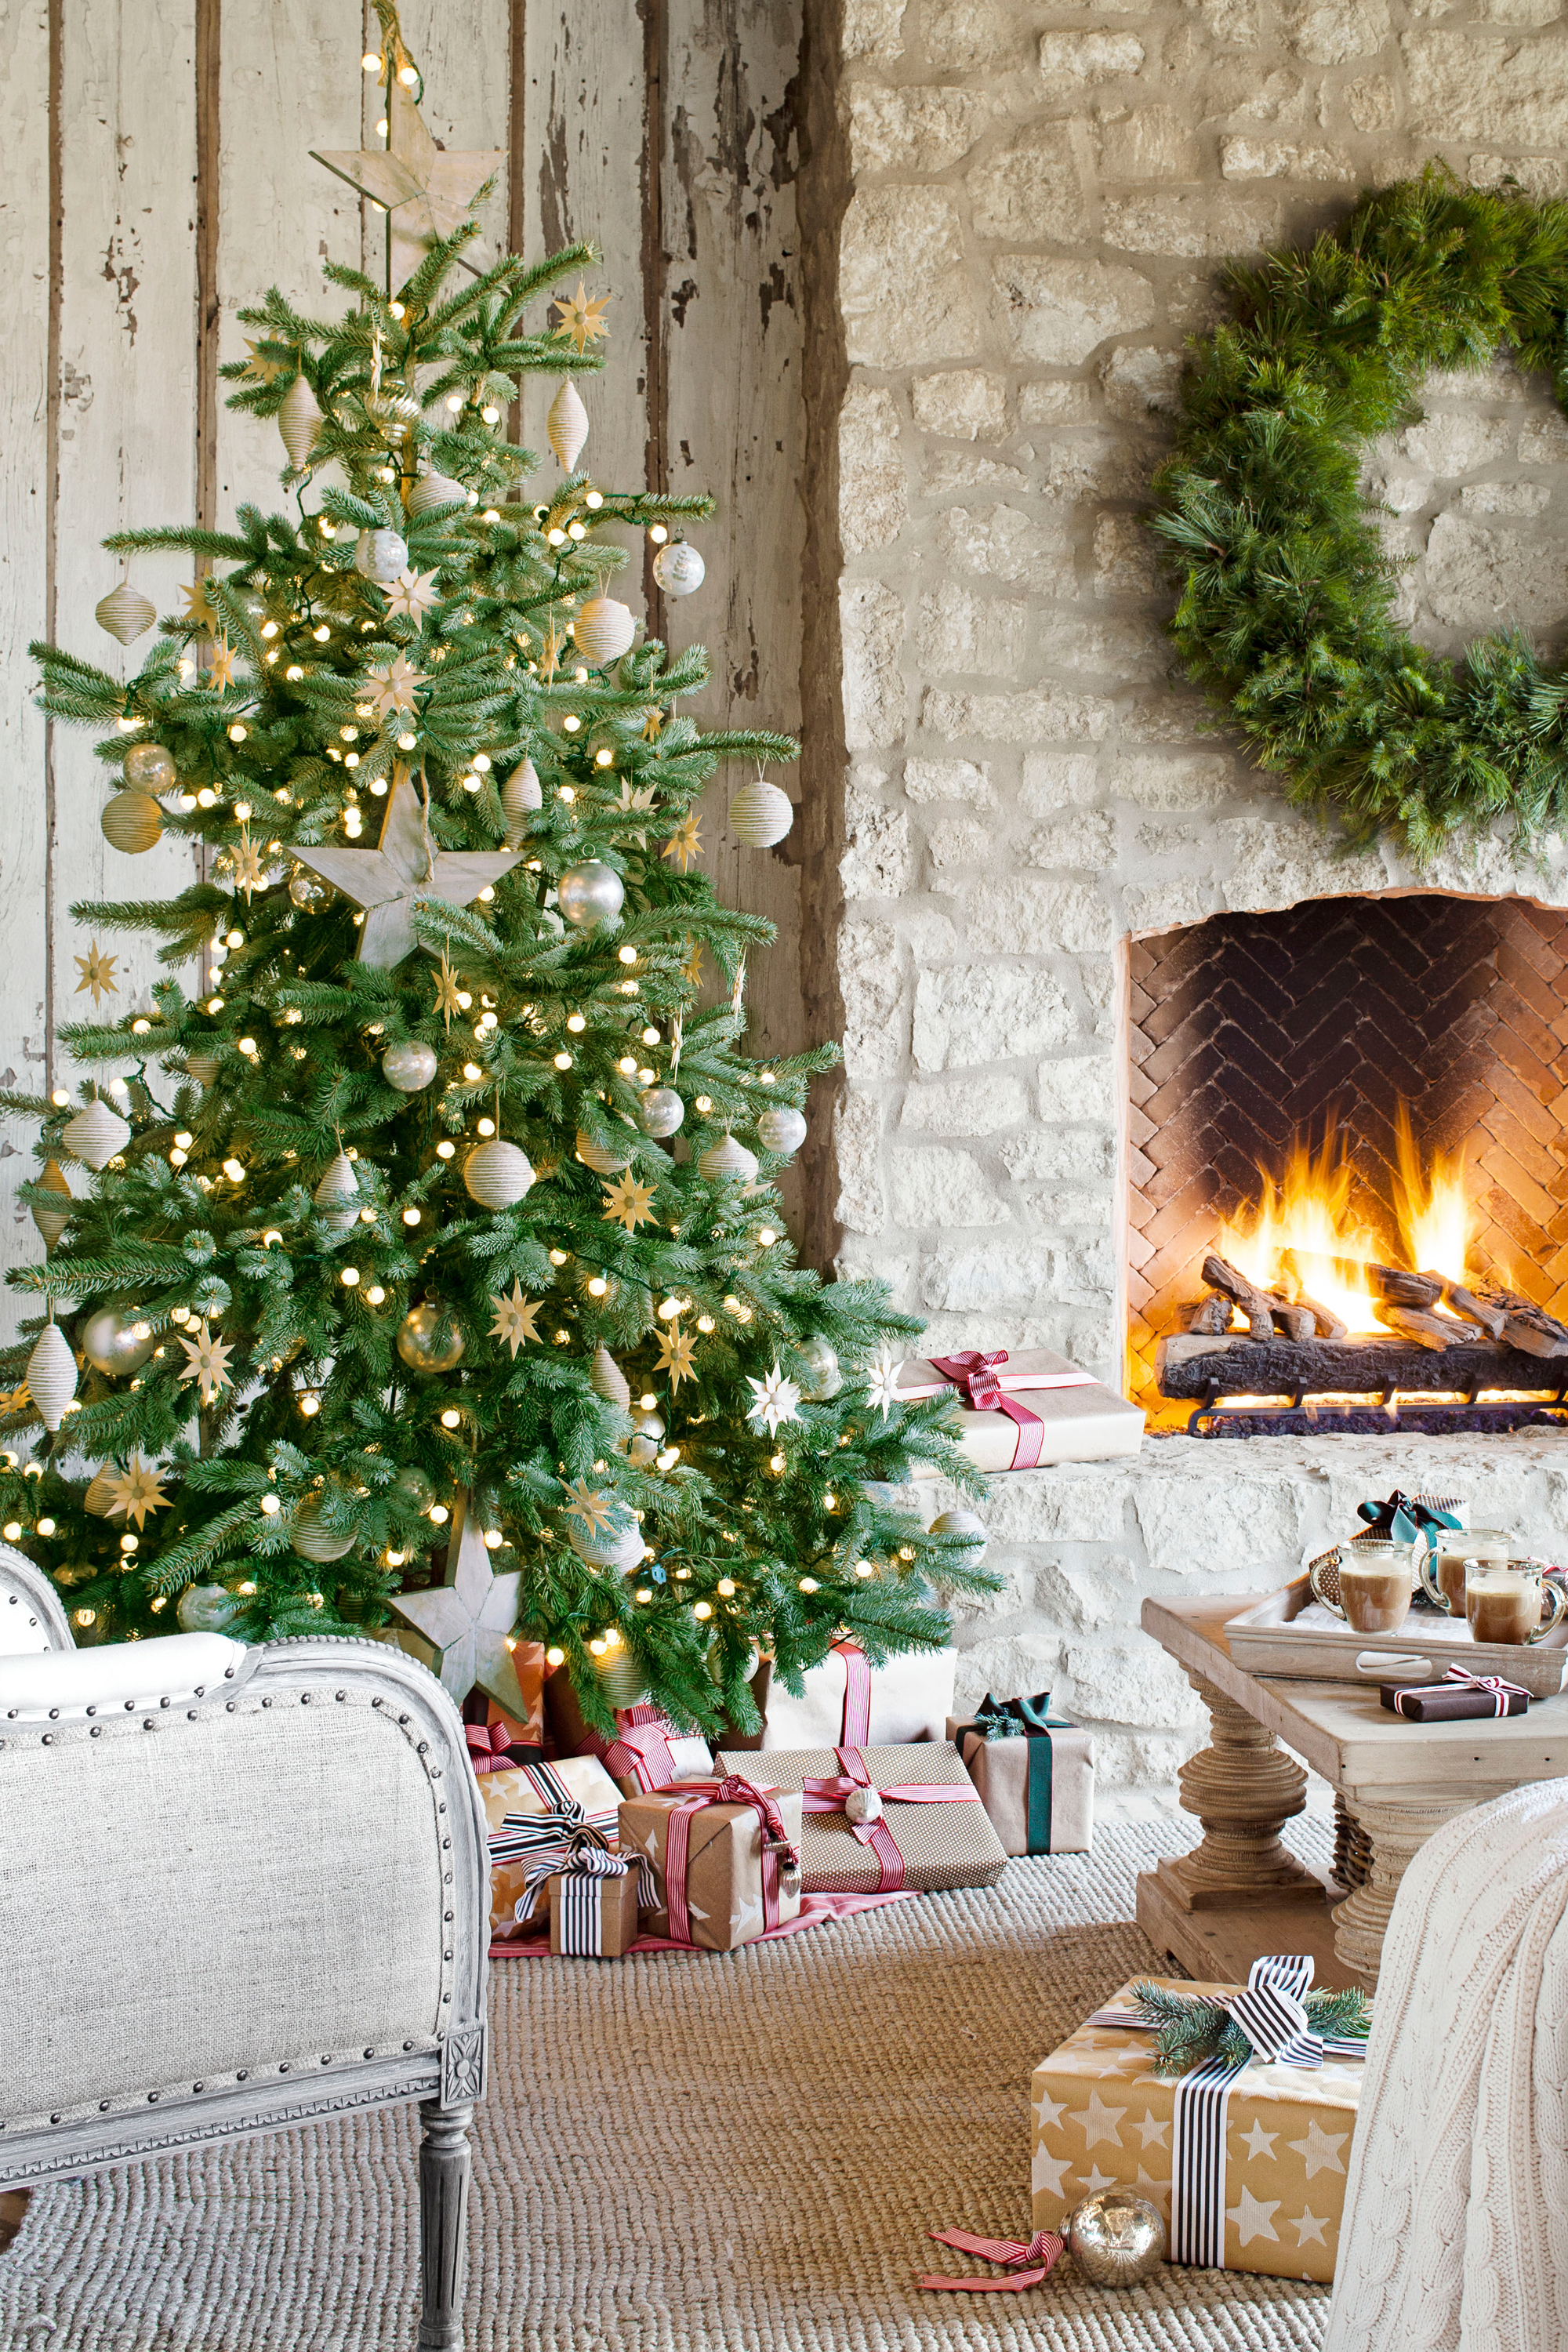 ideas-for-decorating-christmase-decorations-pictures-kids-businesss